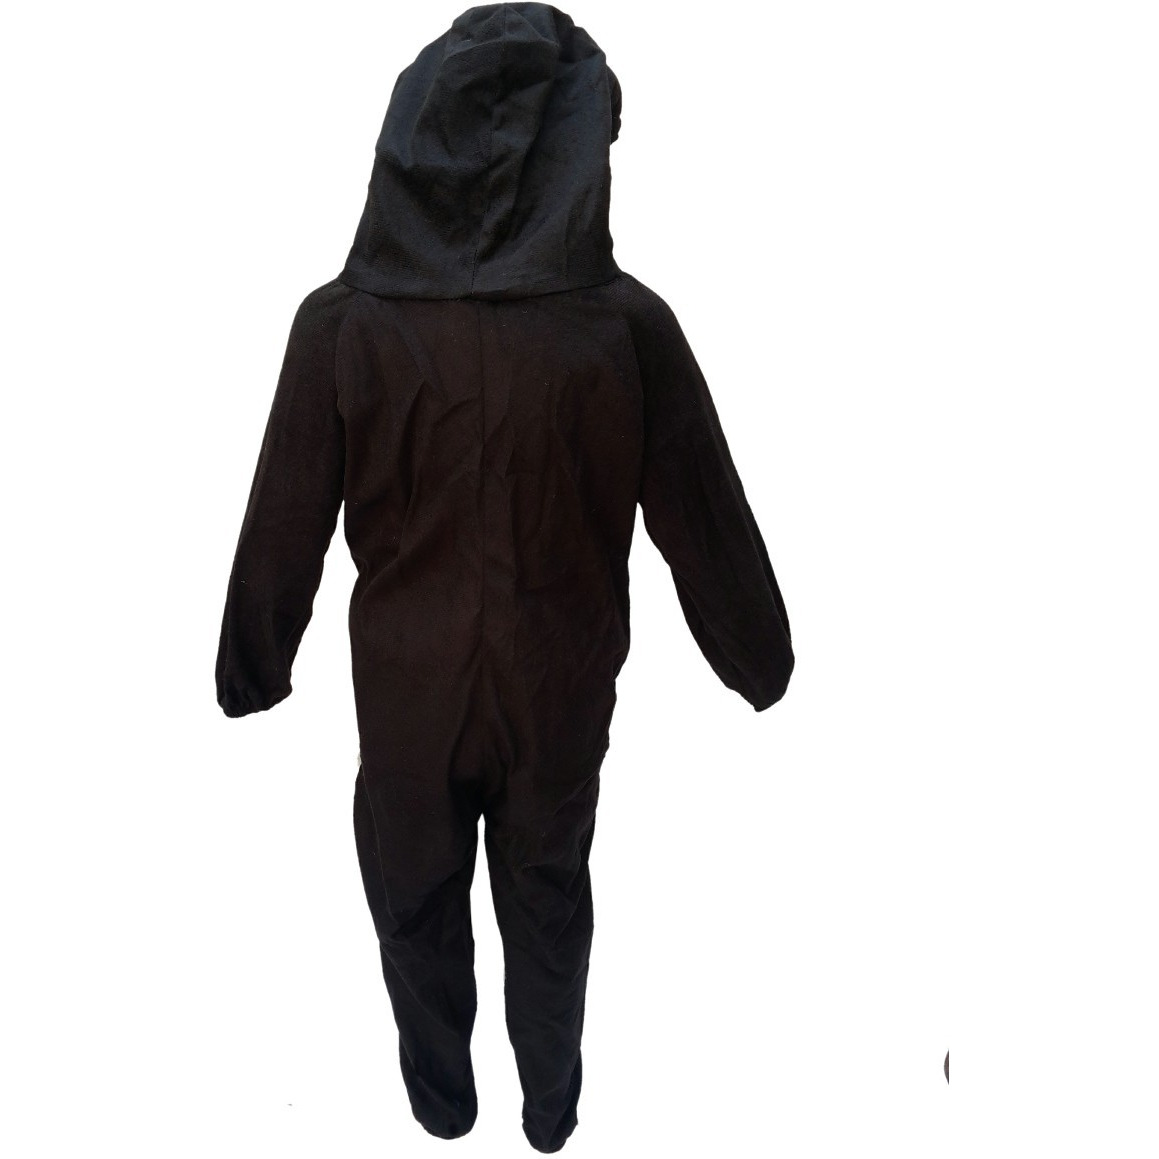 KFD Penguin fancy dress for kids,Bird Costume for School Annual function/Theme Party/Competition/Stage Shows Dress